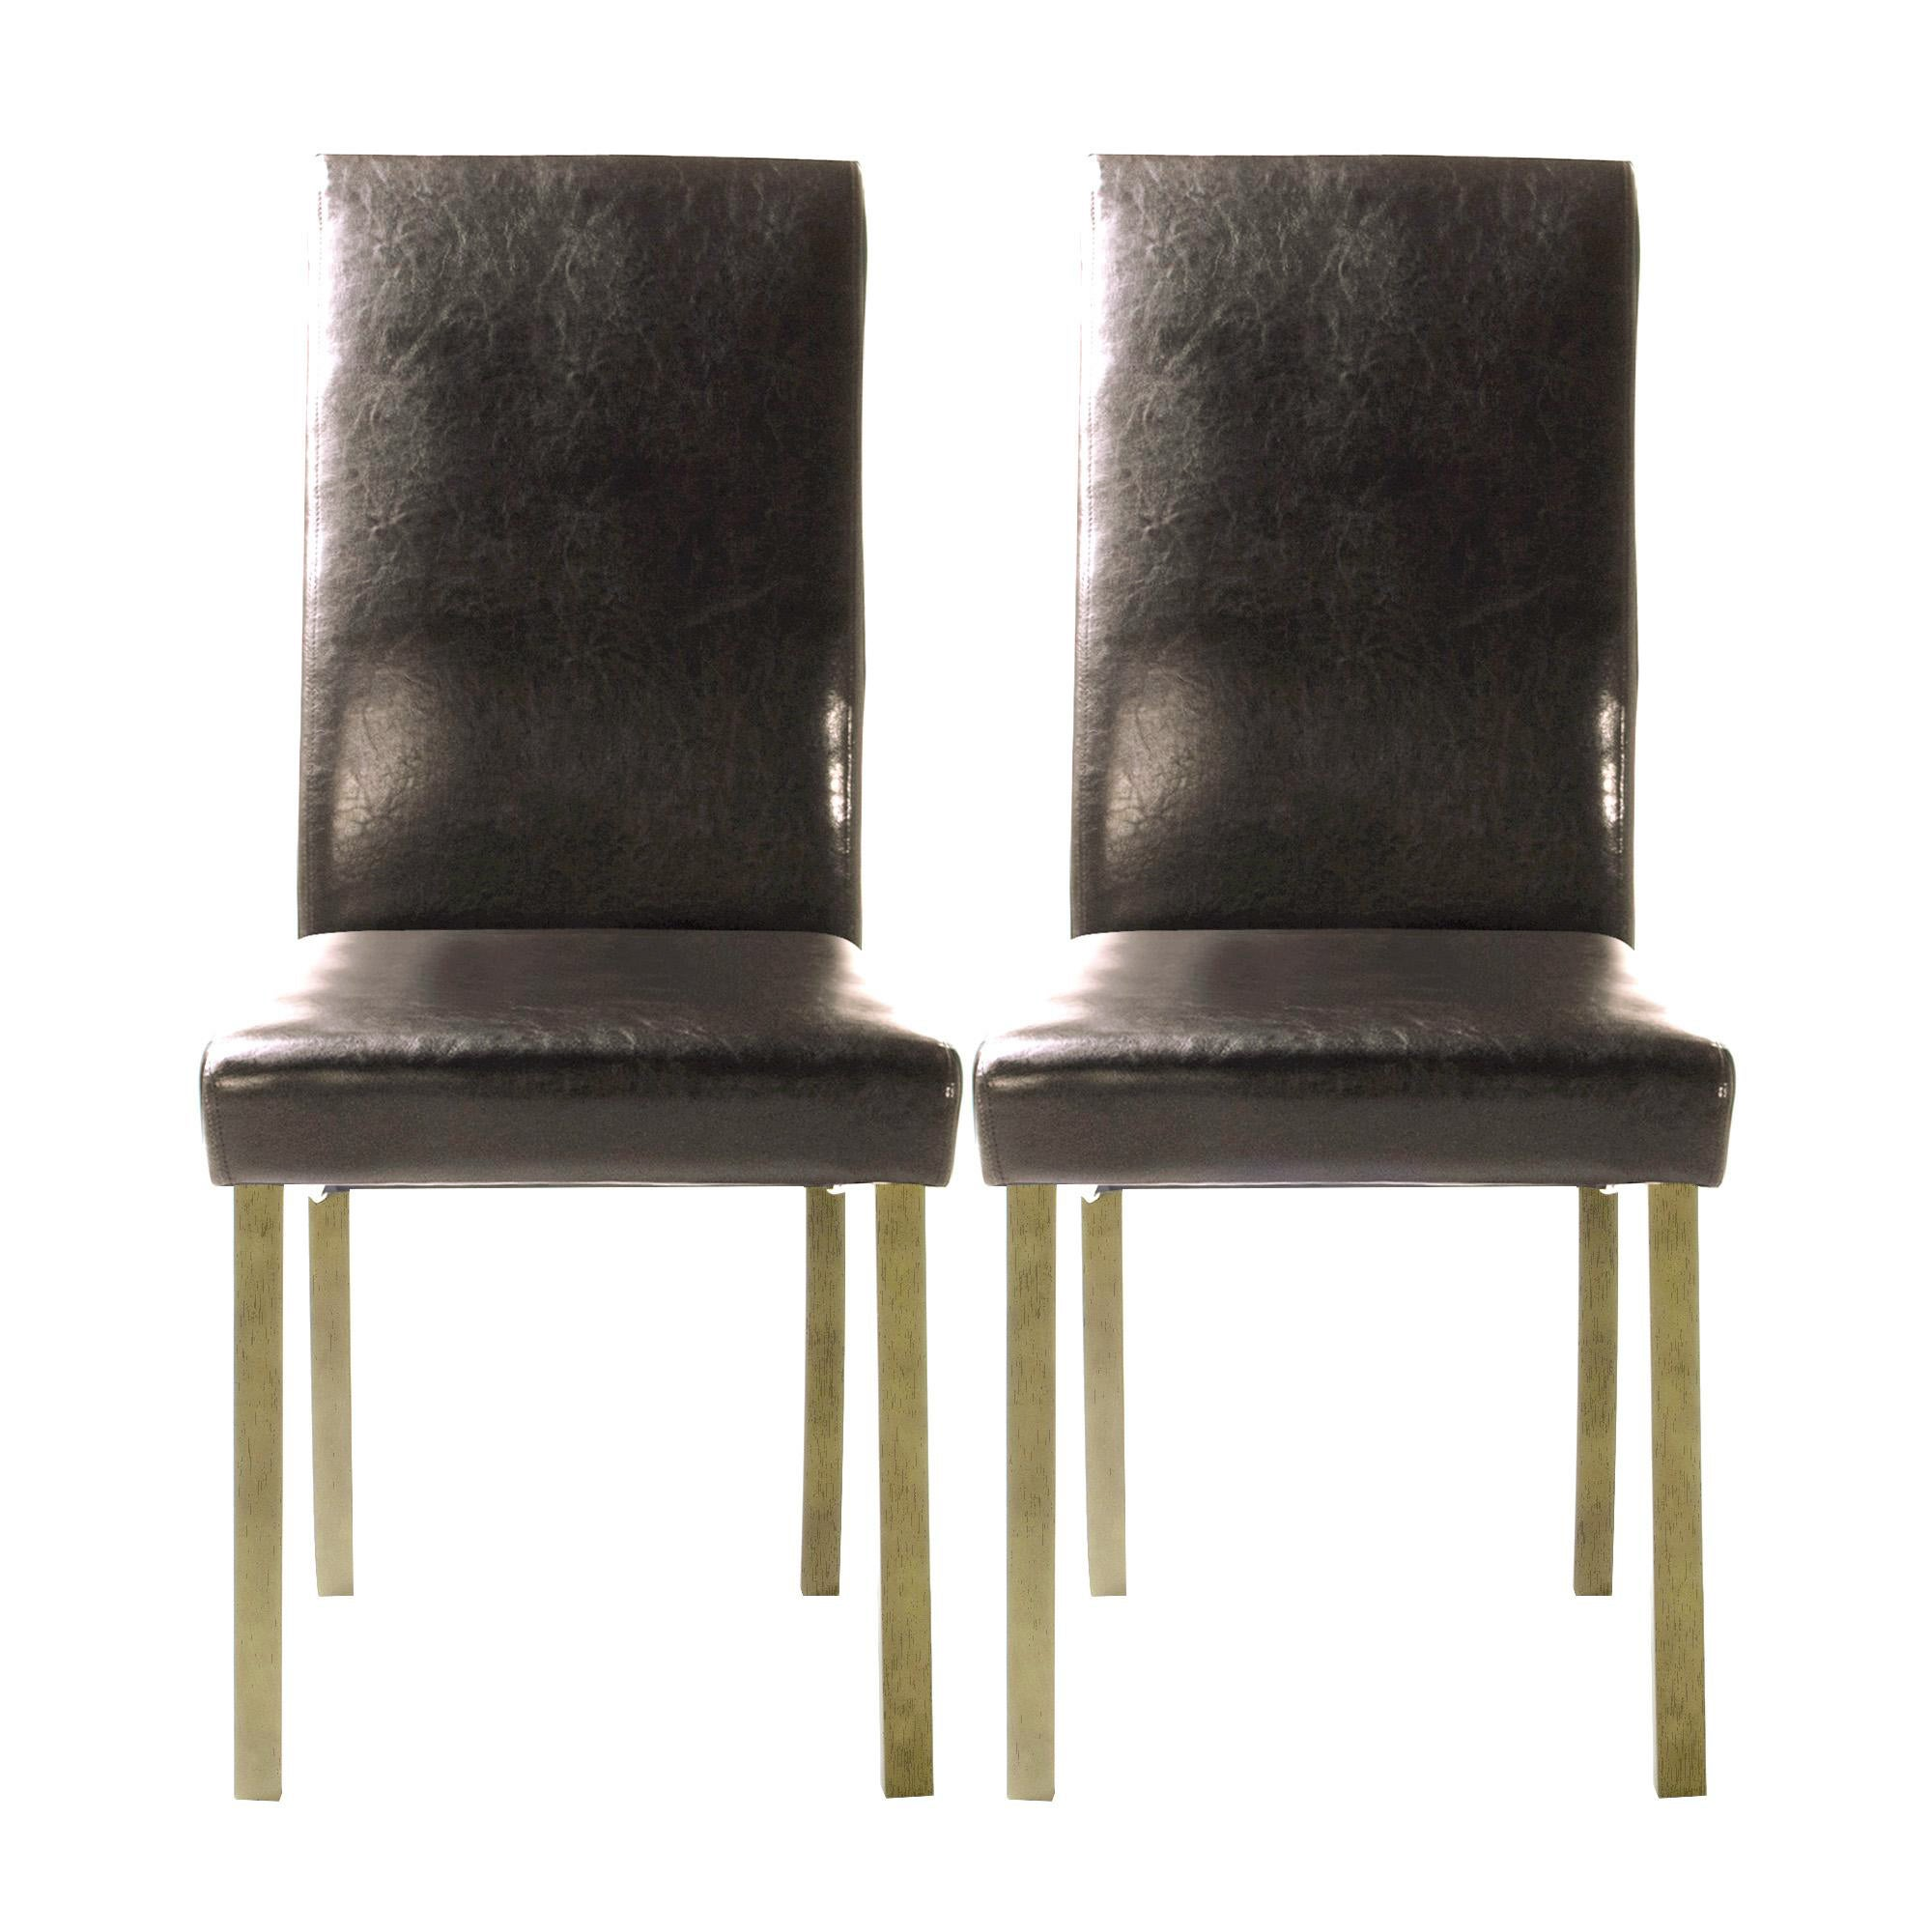 Hunston Brown Faux Leather Pair of Extra Large Dining Chairs